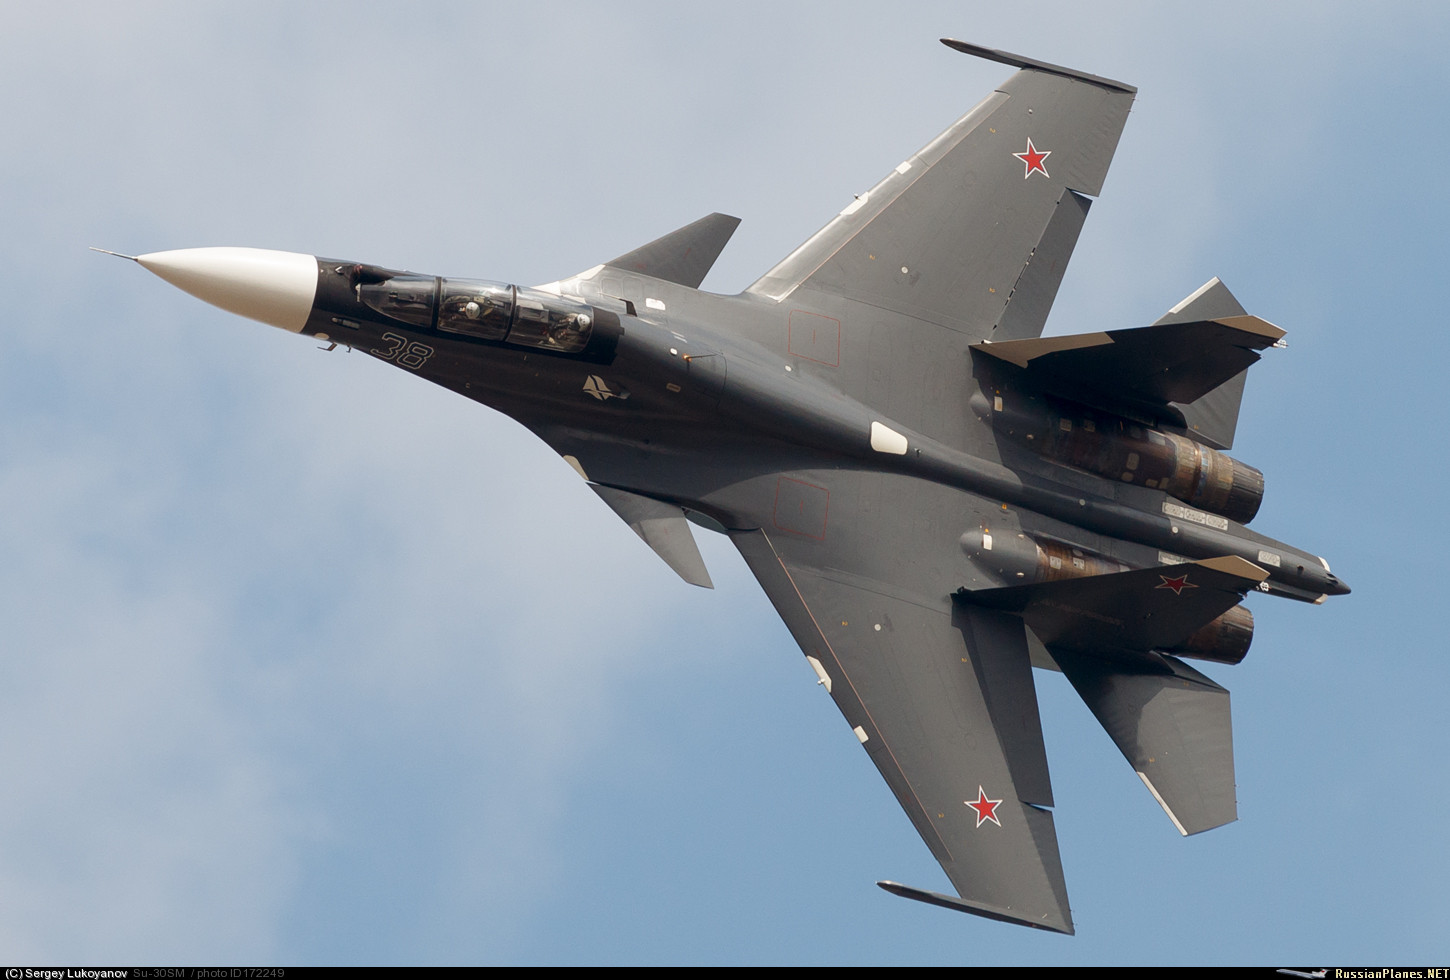 http://russianplanes.net/images/to173000/172249.jpg